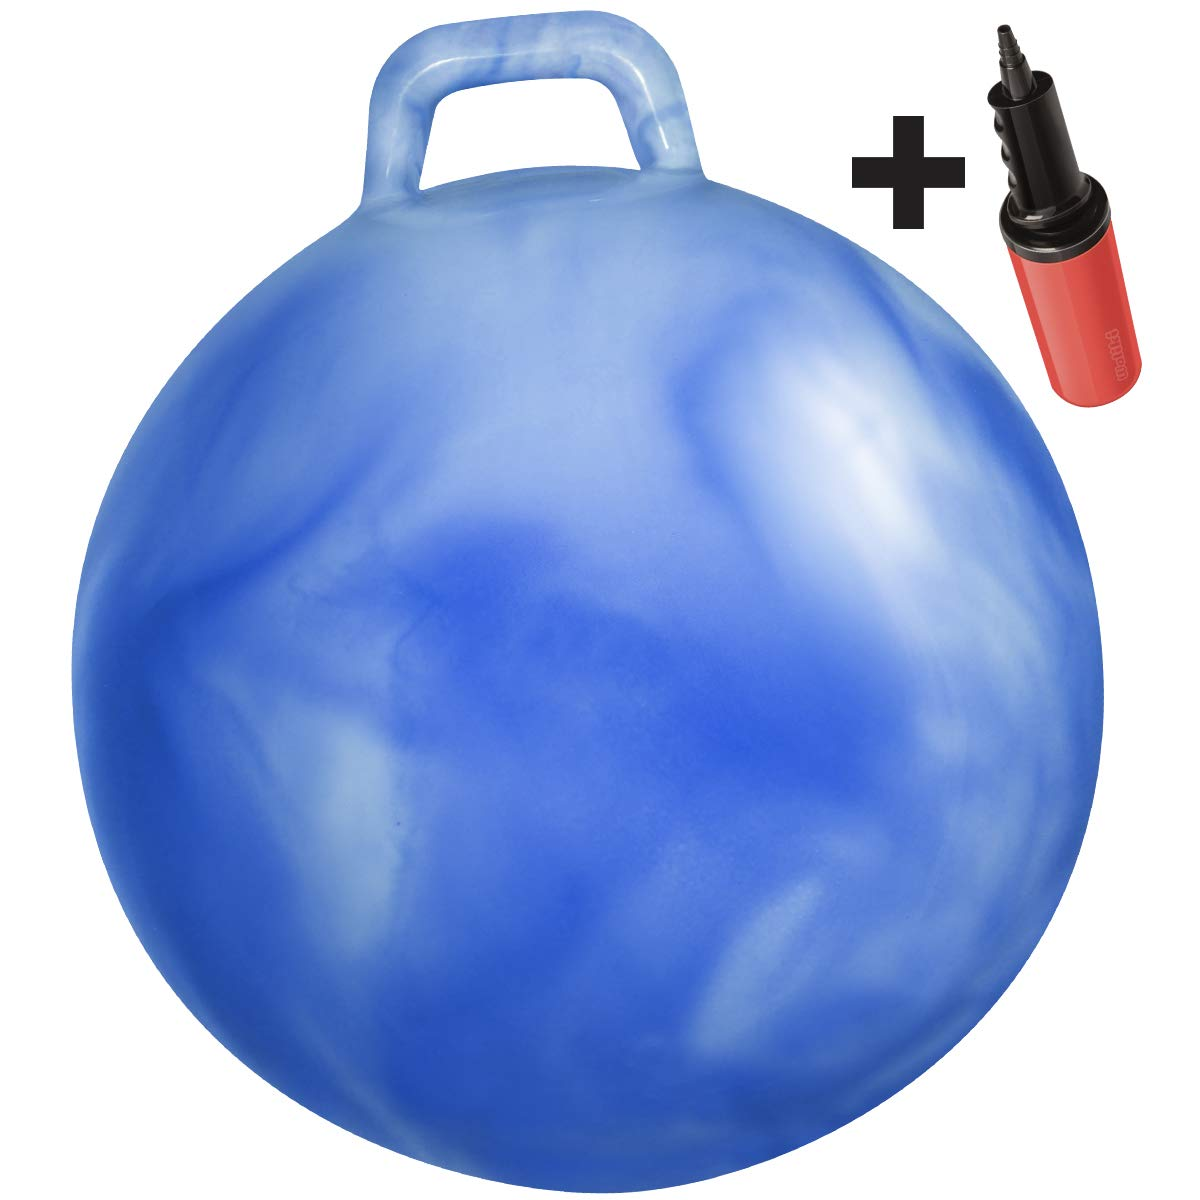 Amazon Com Waliki Toys Hopper Ball For Kids Ages 3 6 Hippity Hop Ball Hopping Ball Bouncy Ball With Handles Sit Bounce Kangaroo Bouncer Jumping Ball 18 Inches Hurricane Blue Pump Included Toys